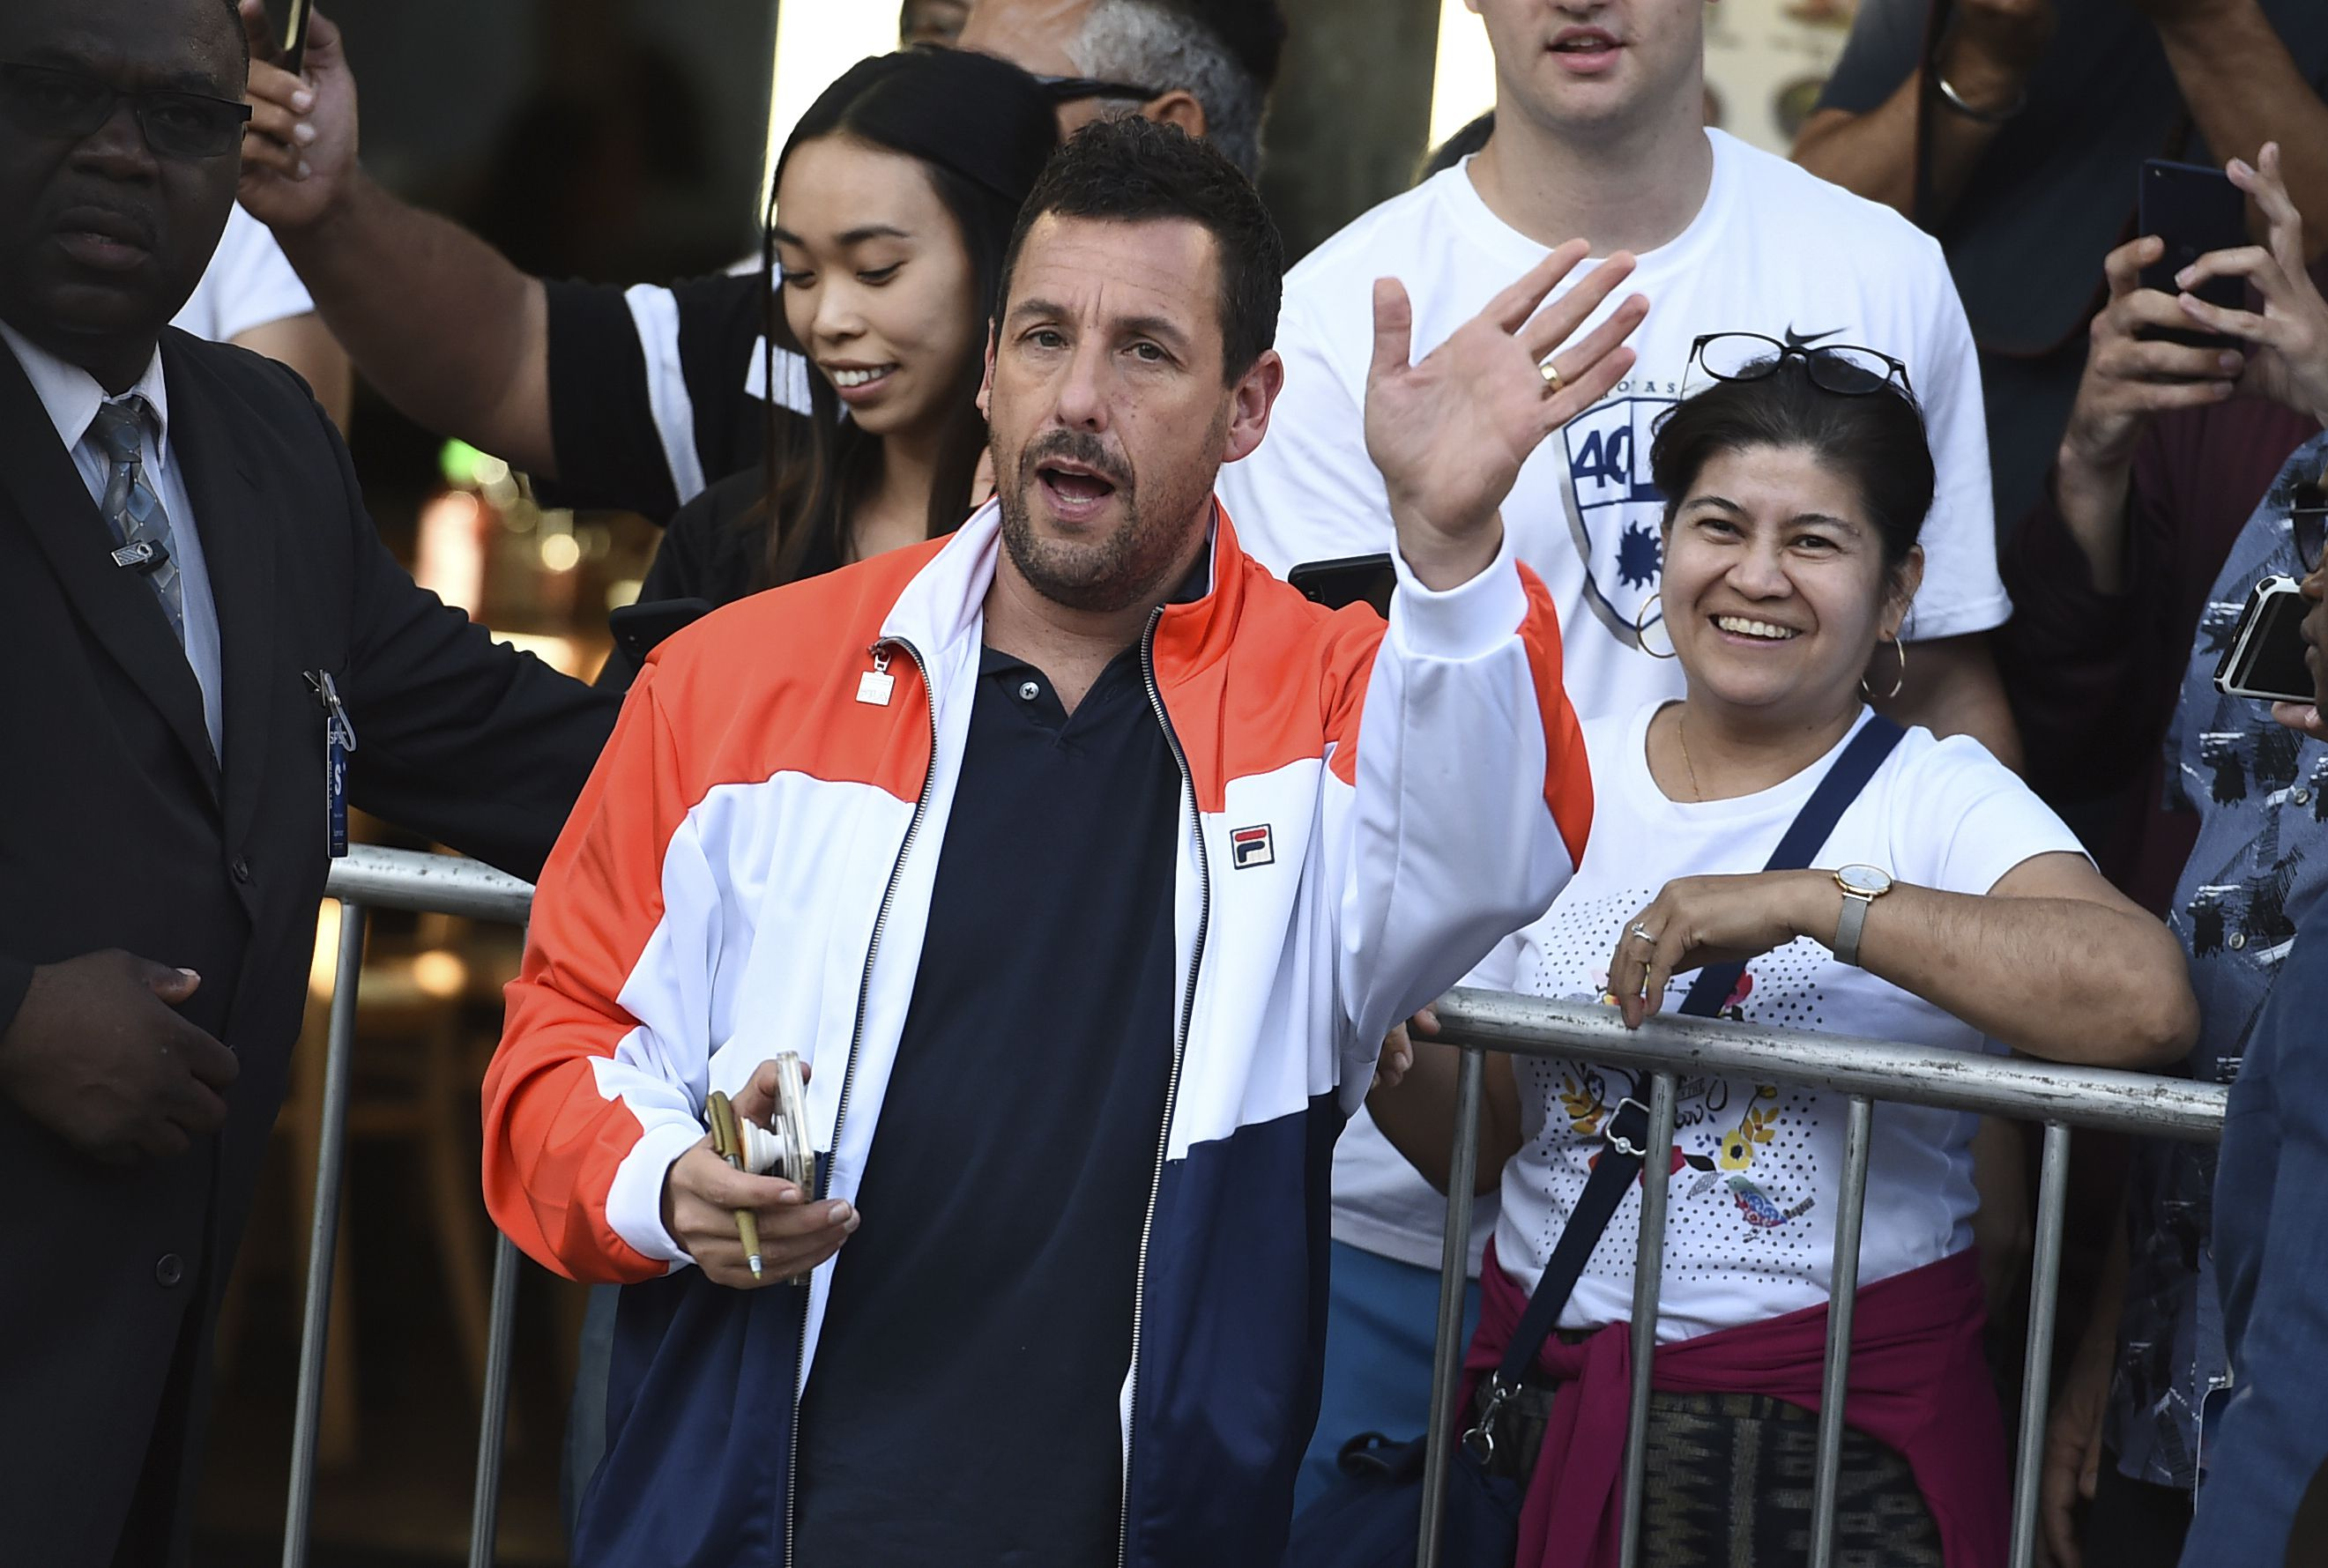 Adam Sandler Returns To The North Shore To Film Hubie Halloween The Boston Globe